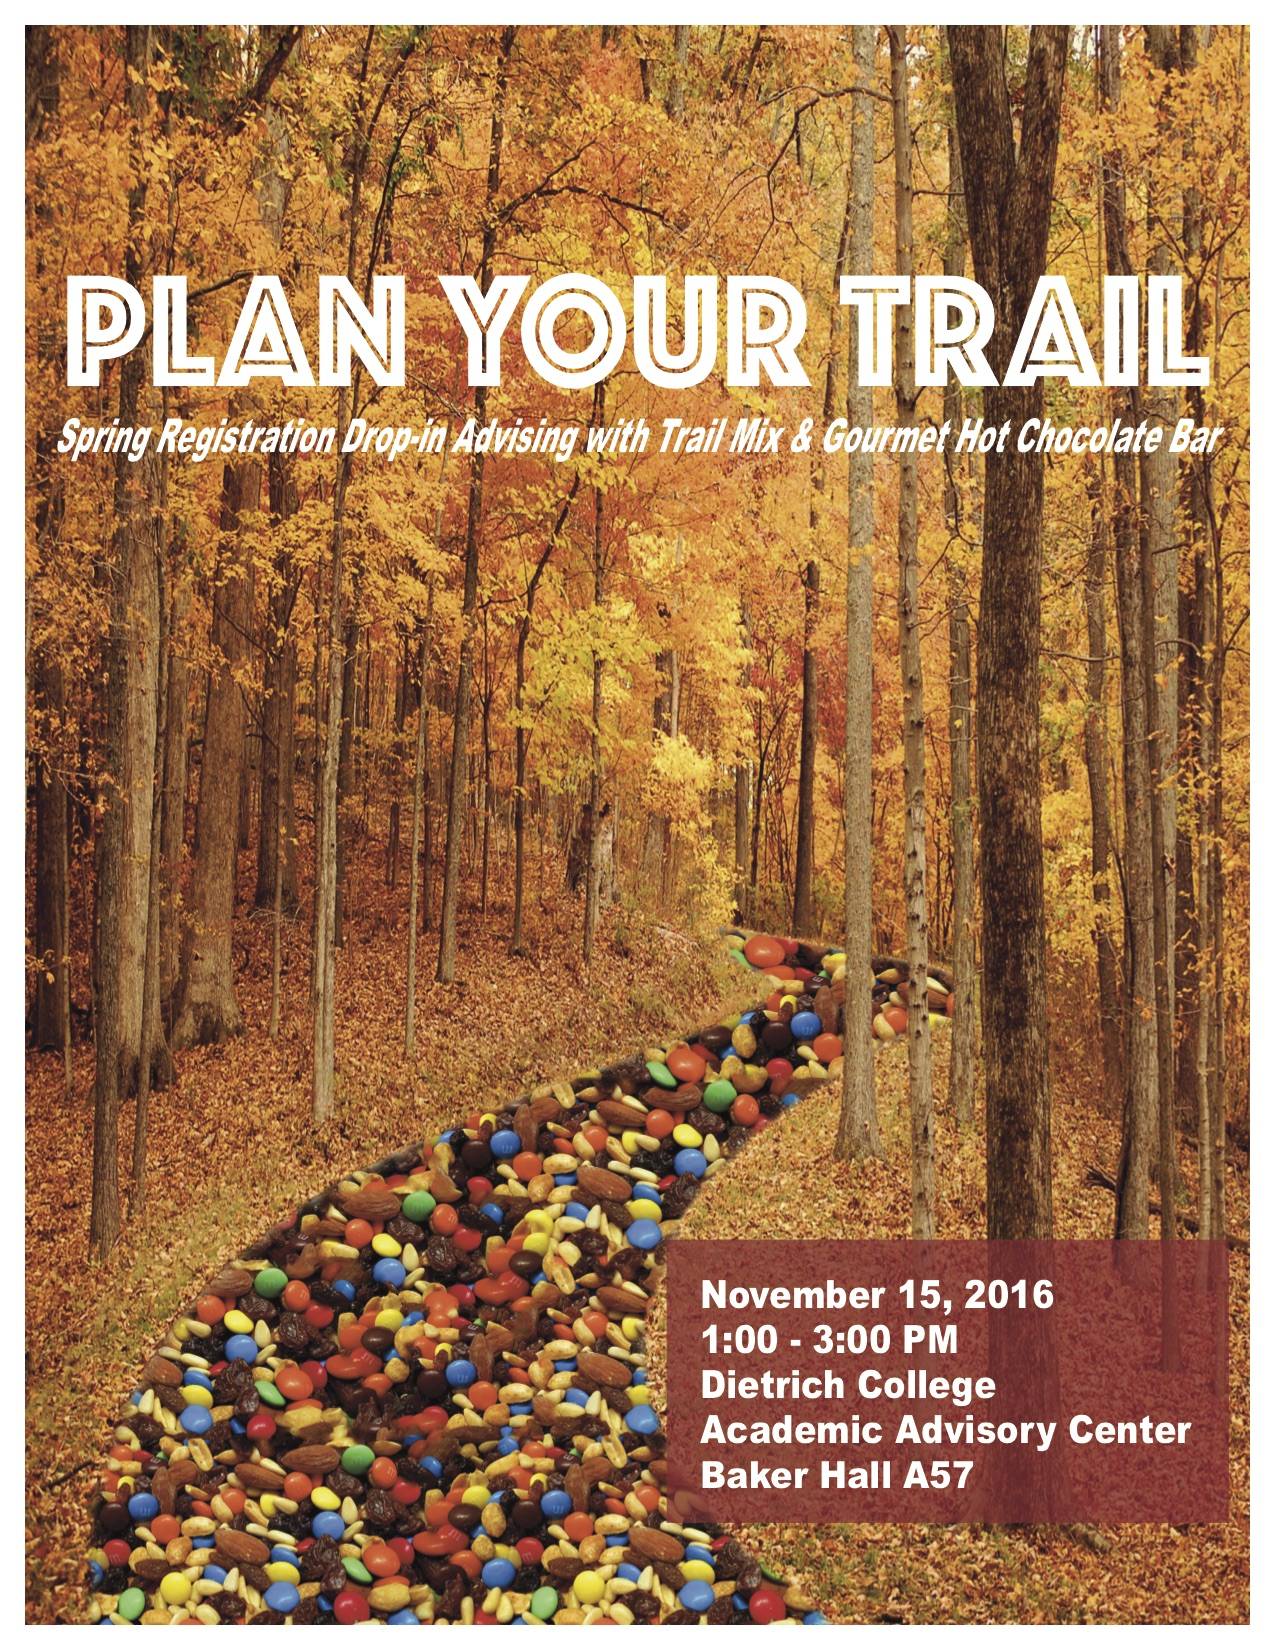 Plan Your Trail Poster